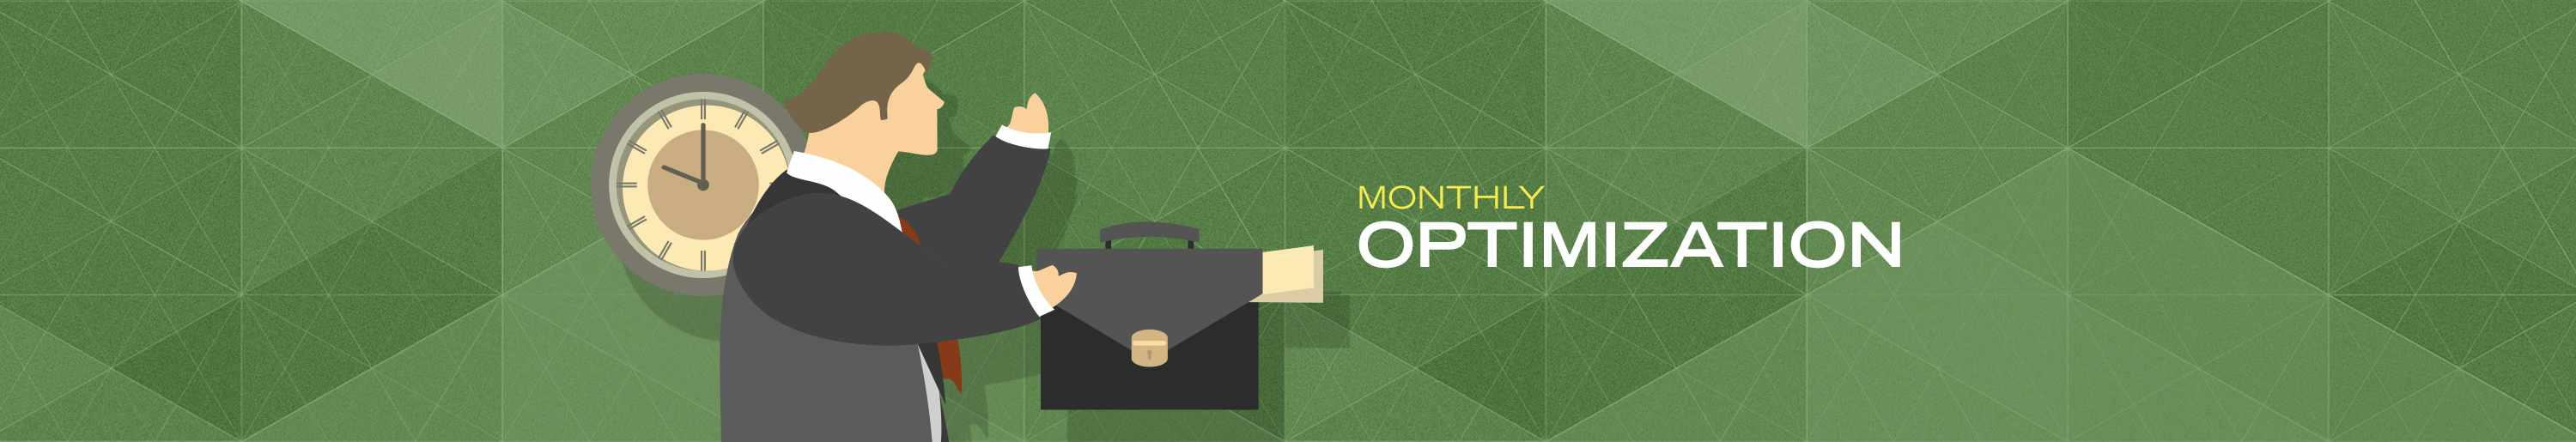 monthly_optimization_header2